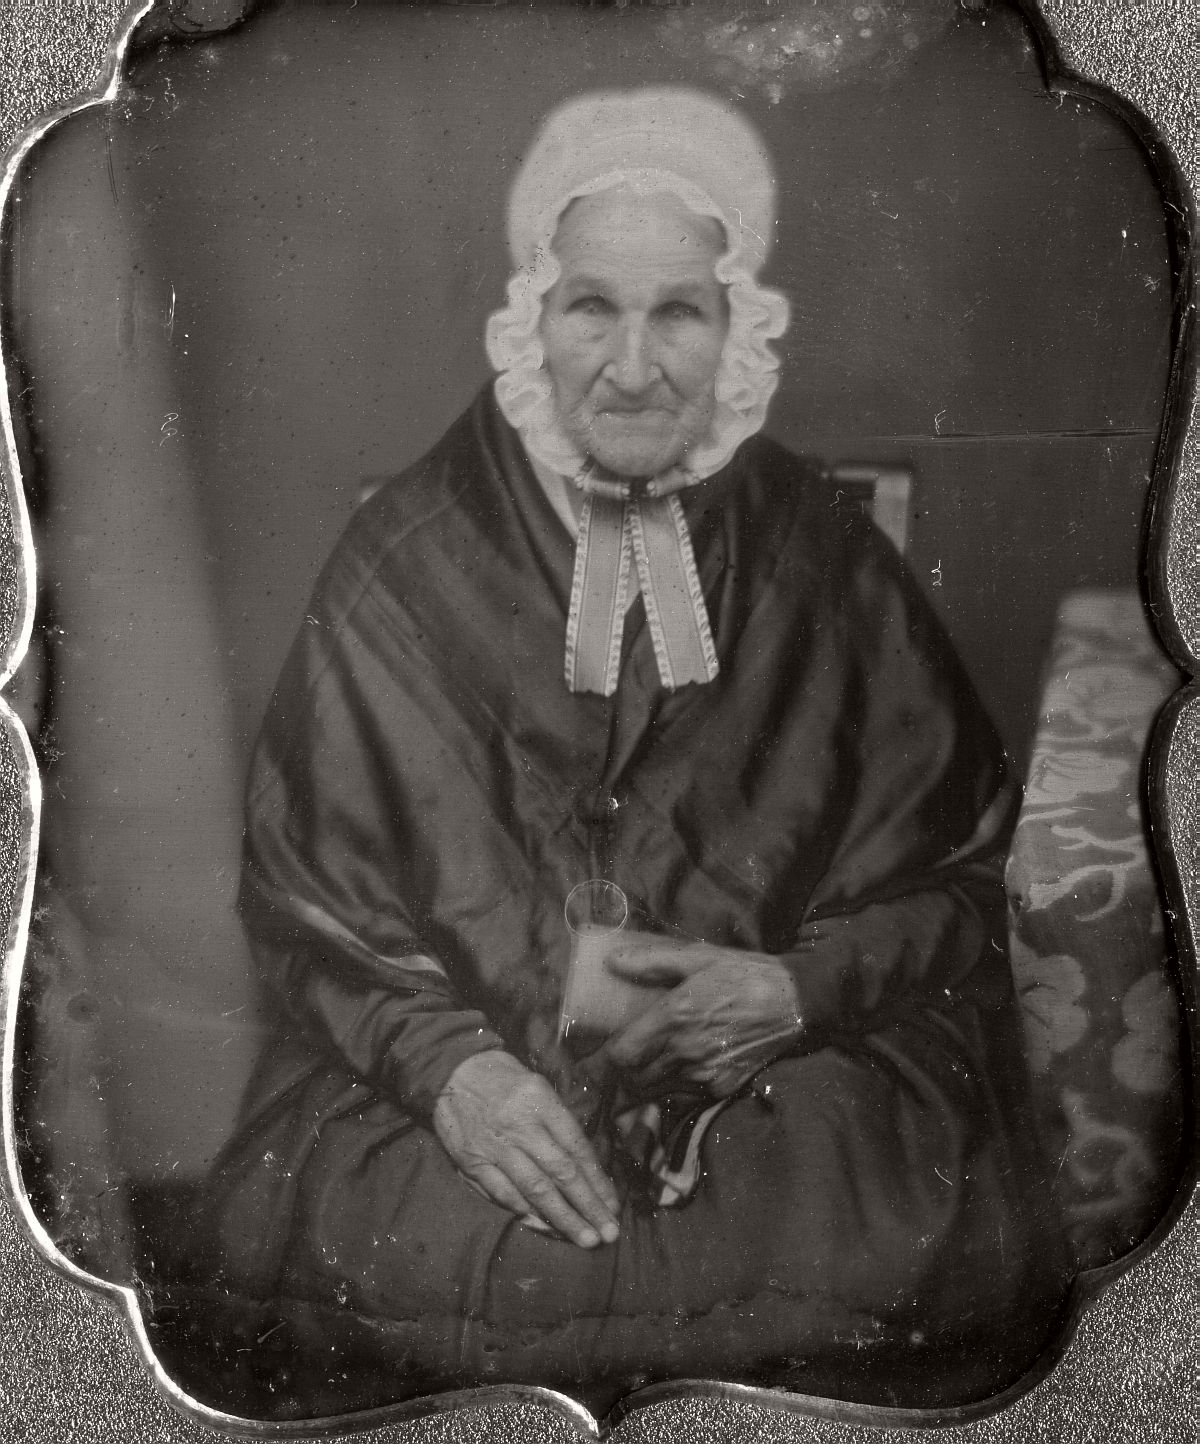 daguerreotype-portrait-people-born-in-the-late-18th-xviii-century-1700s-vintage-14